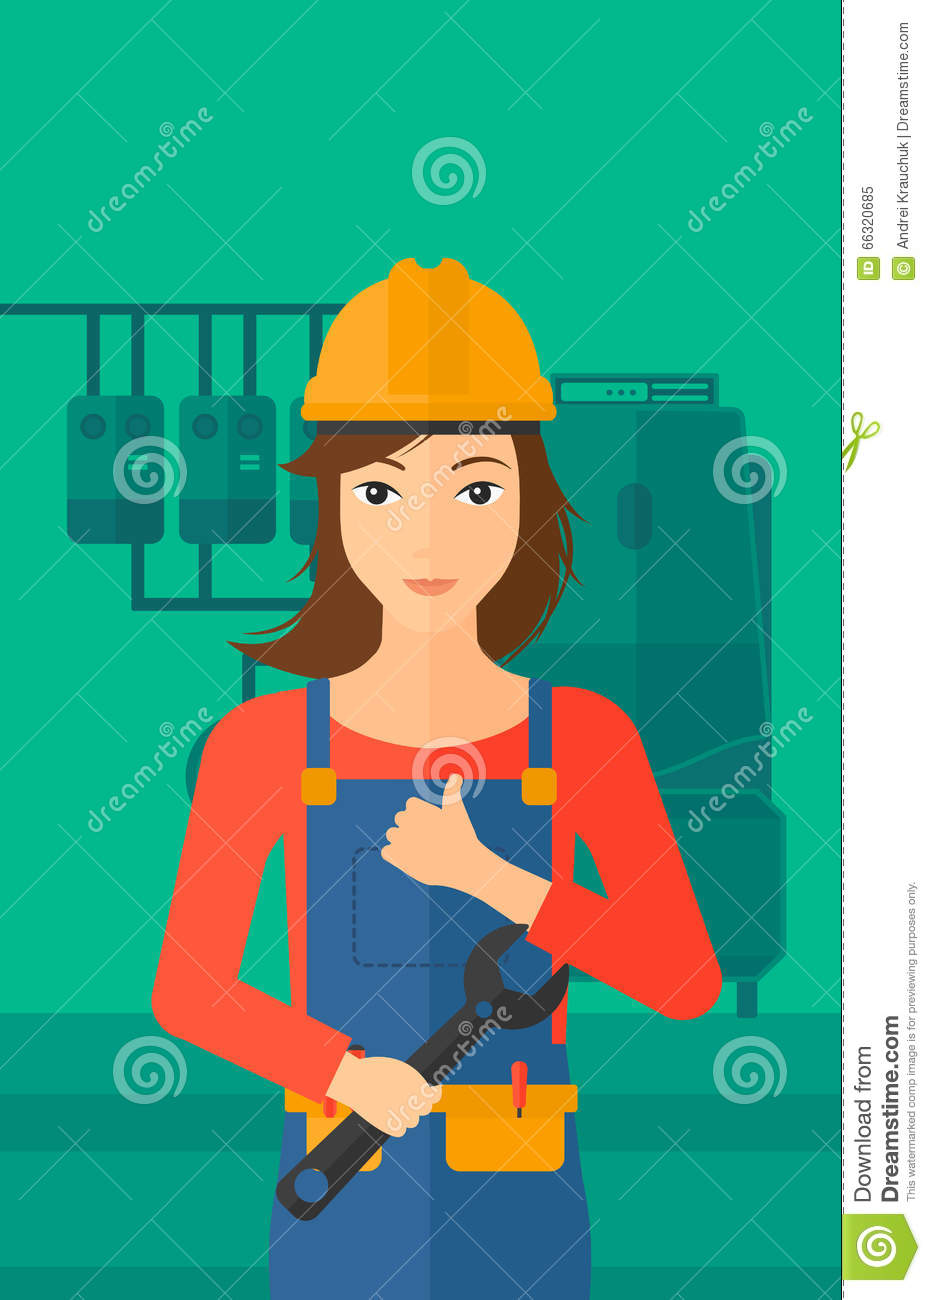 Cheerful Repairer With Spanner. Stock Vector - Illustration of human ...